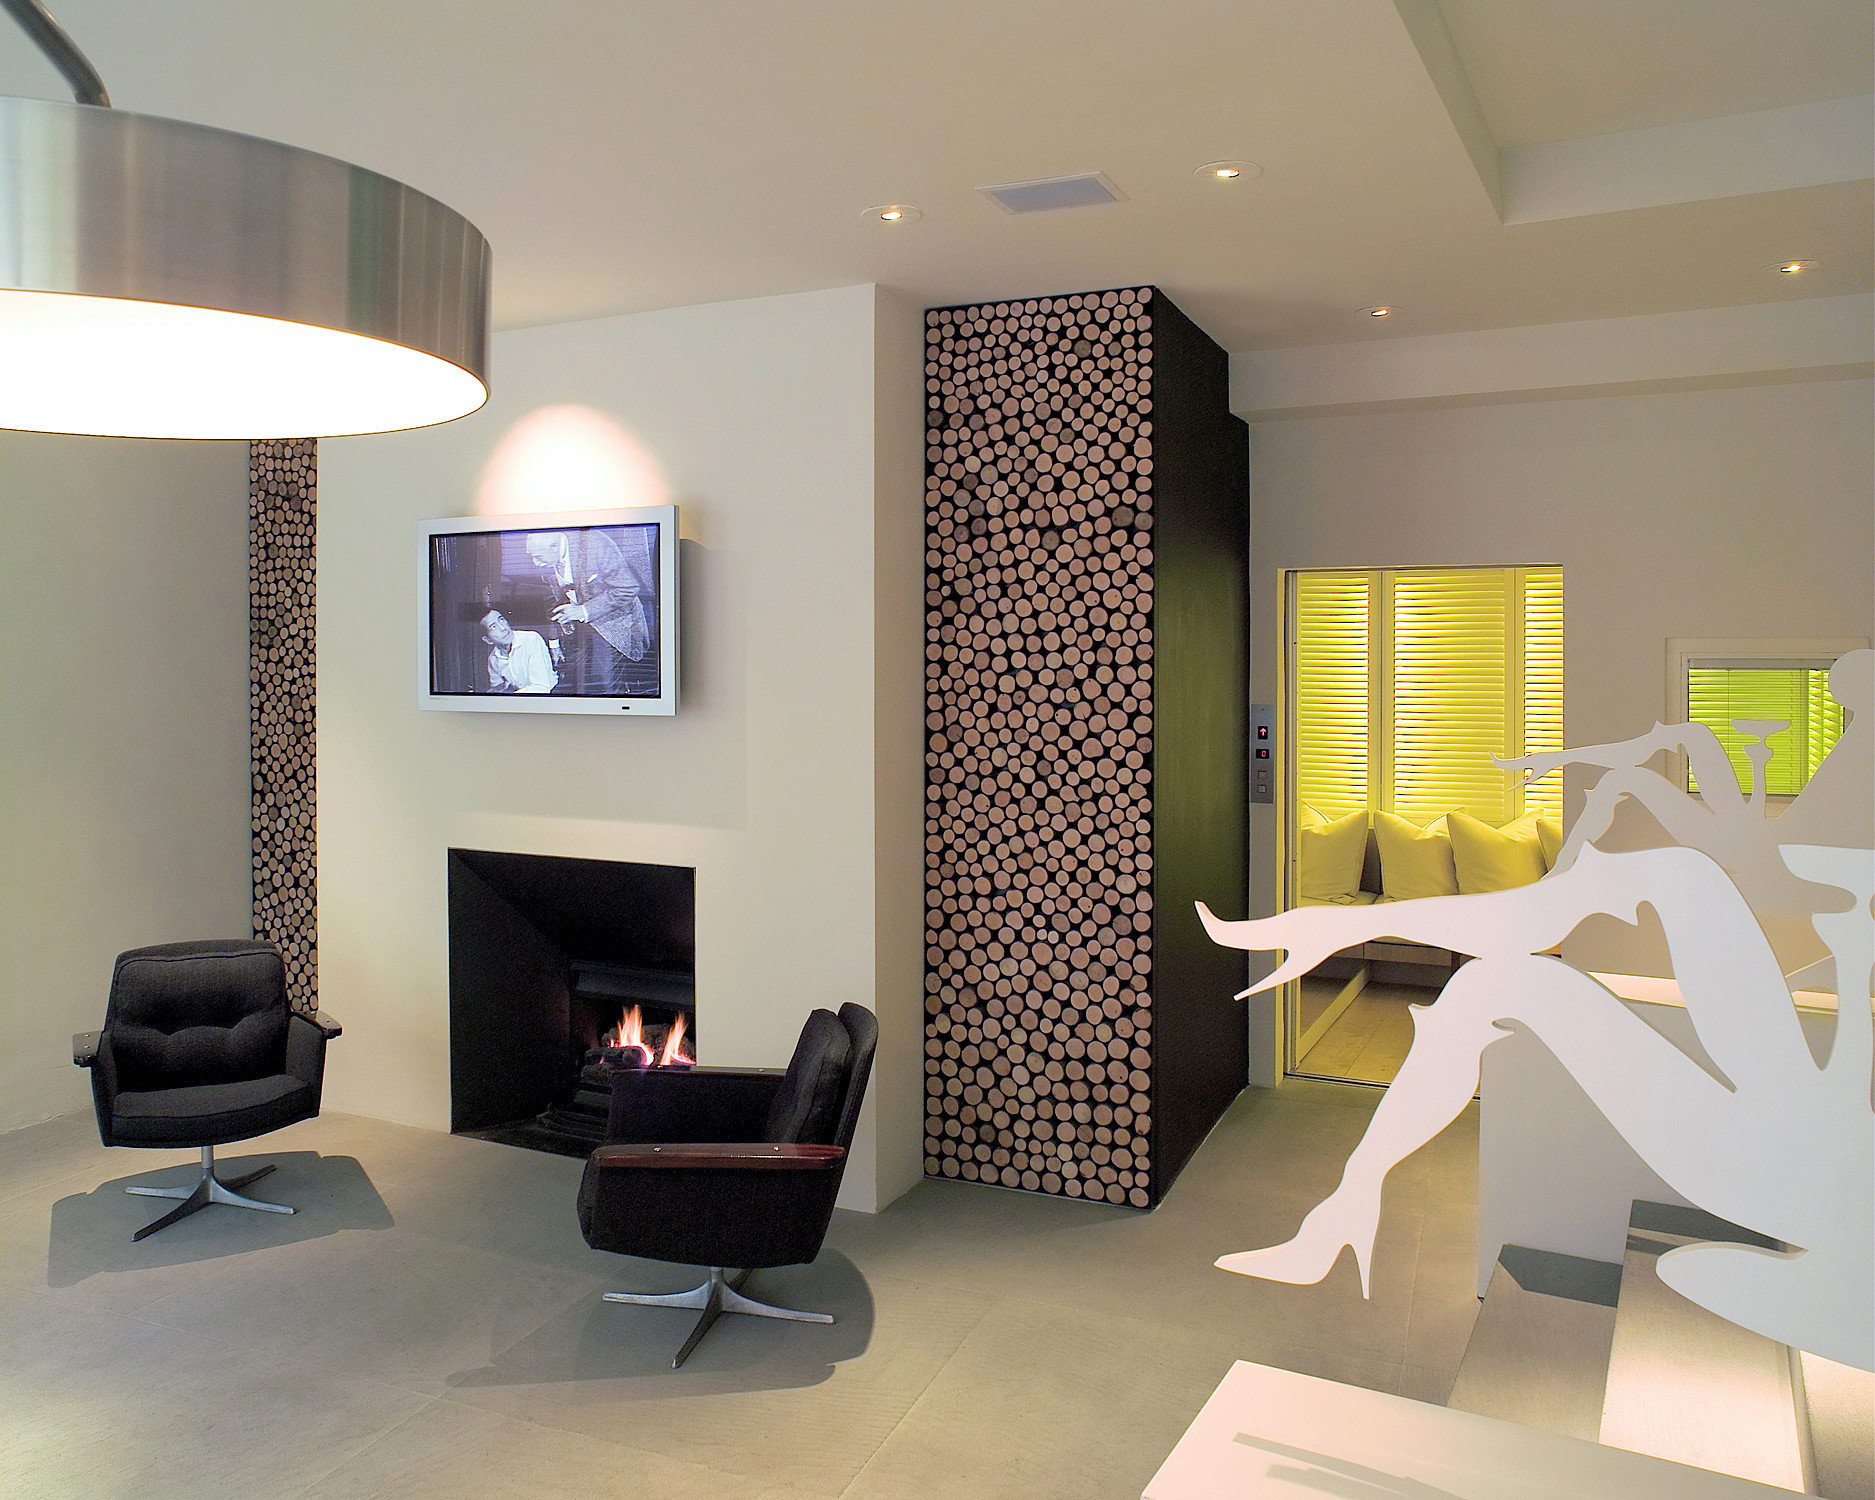 City Fireplace Florence Hotels Italy Living Lounge Modern wall indoor room property living room interior design floor condominium ceiling Design lighting home office real estate window covering Lobby apartment furniture Bedroom